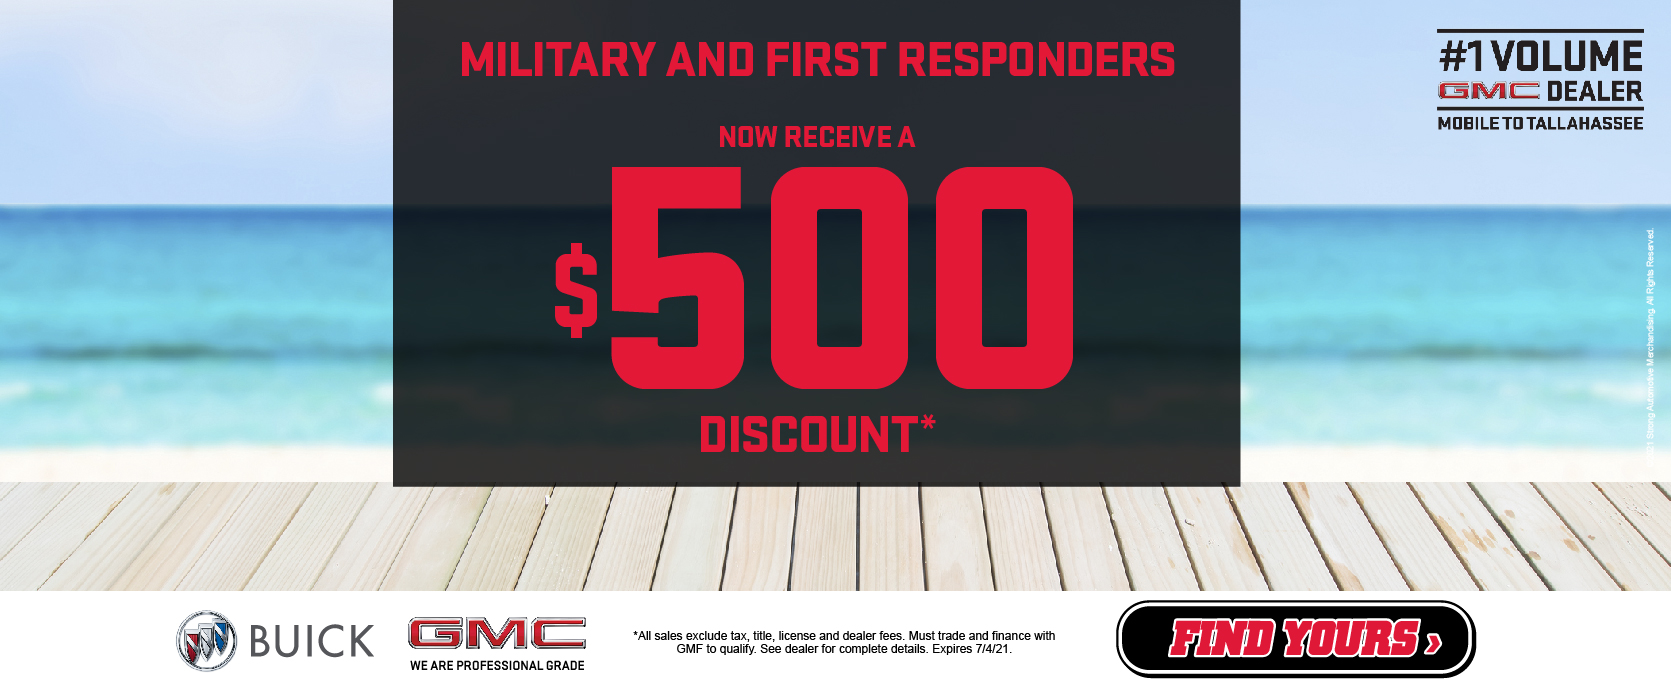 Military and First Responders - $500 Discount